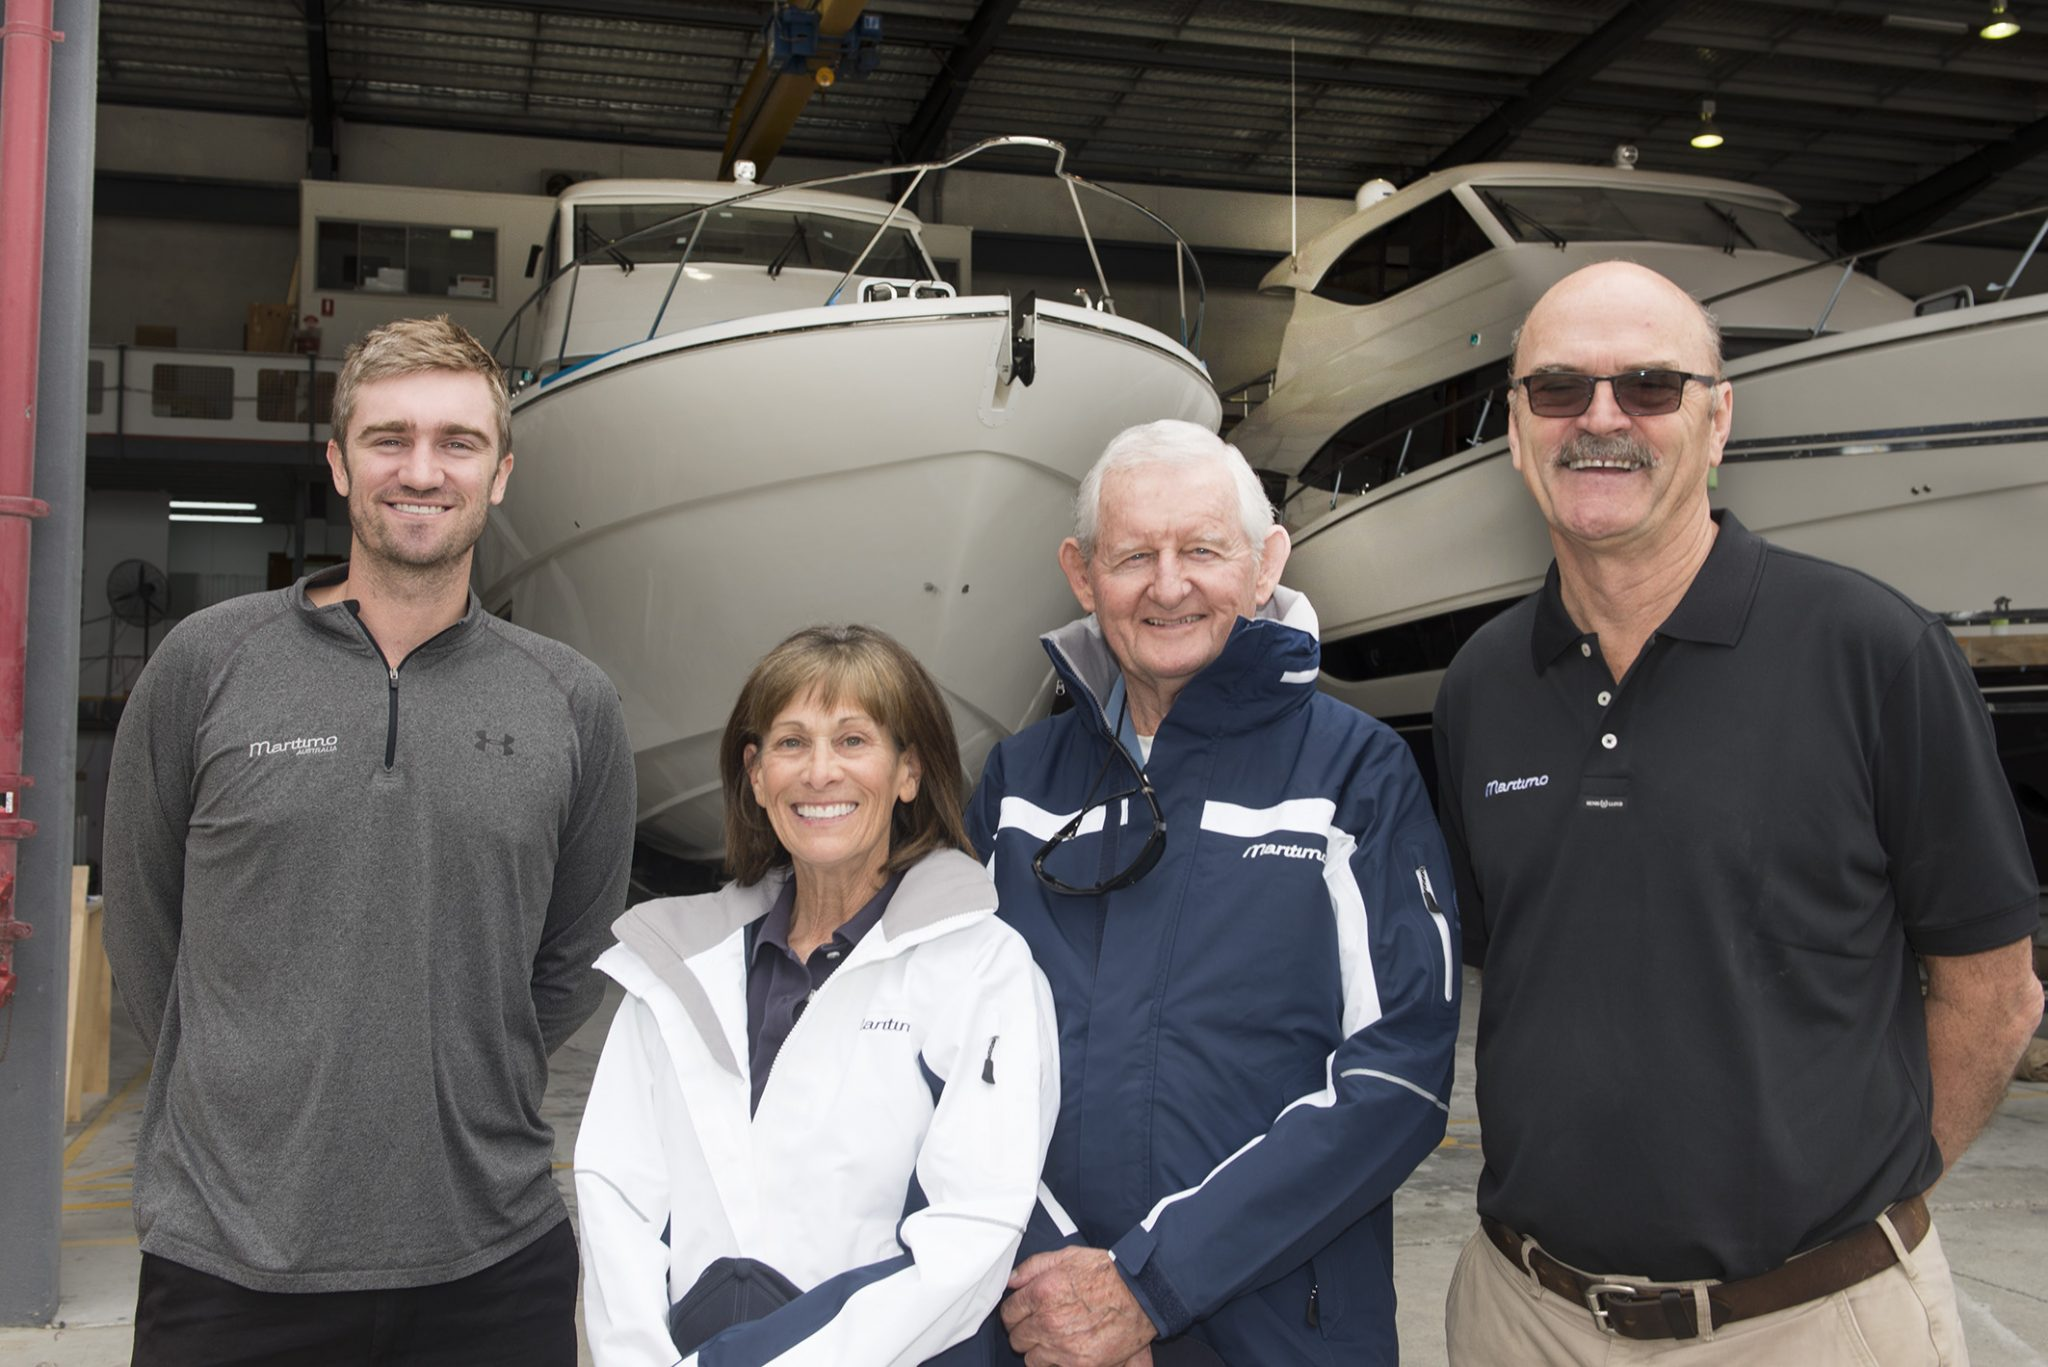 Tom and Beth with Maritimo's lead designer Tom Barry-Cotter and Operations Manager Phil Candler